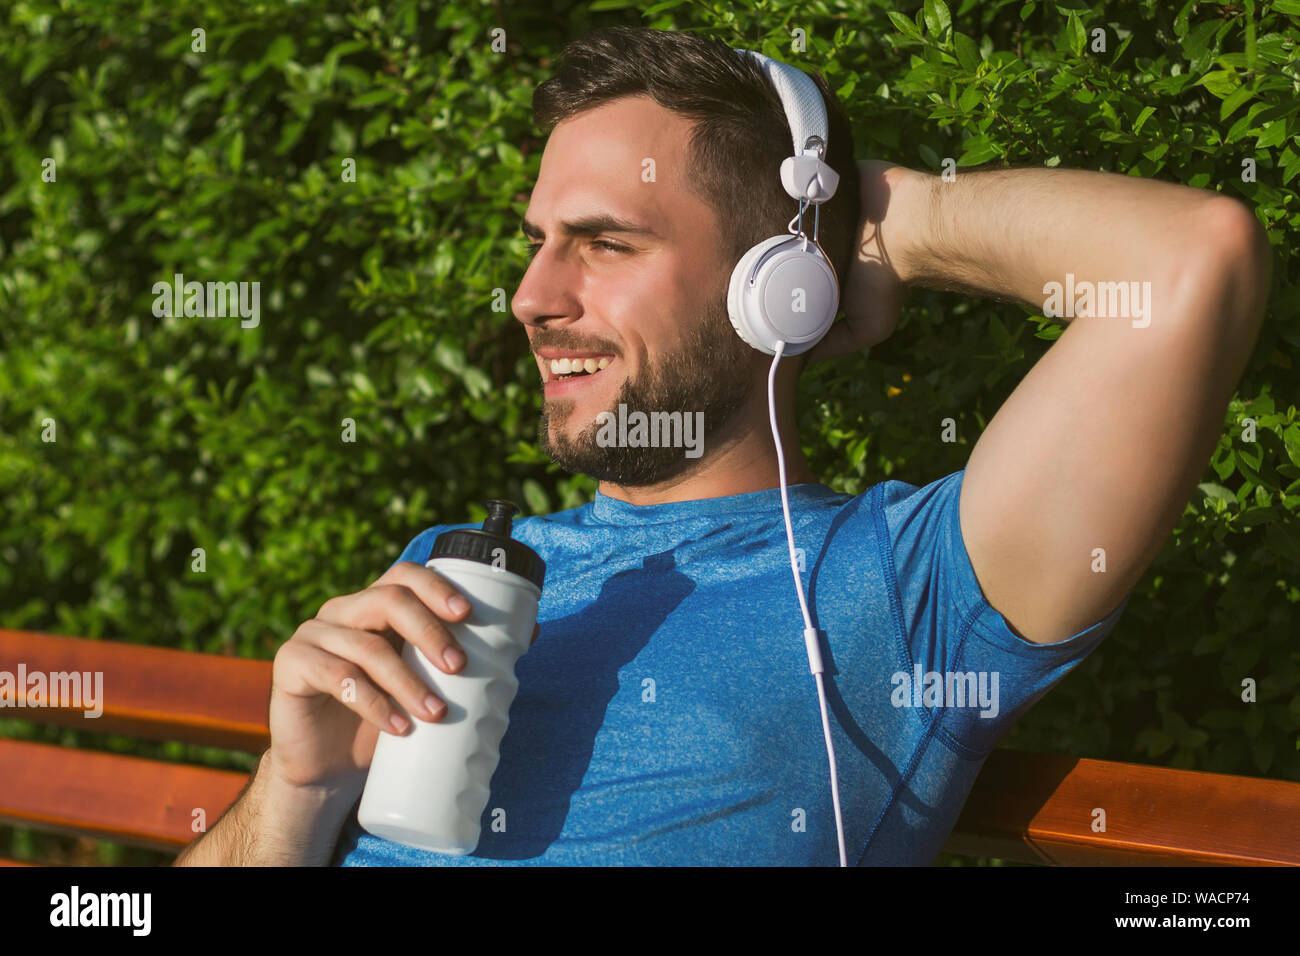 Handsome man with headphones  drinking water and resting after exercise in the park. Stock Photo